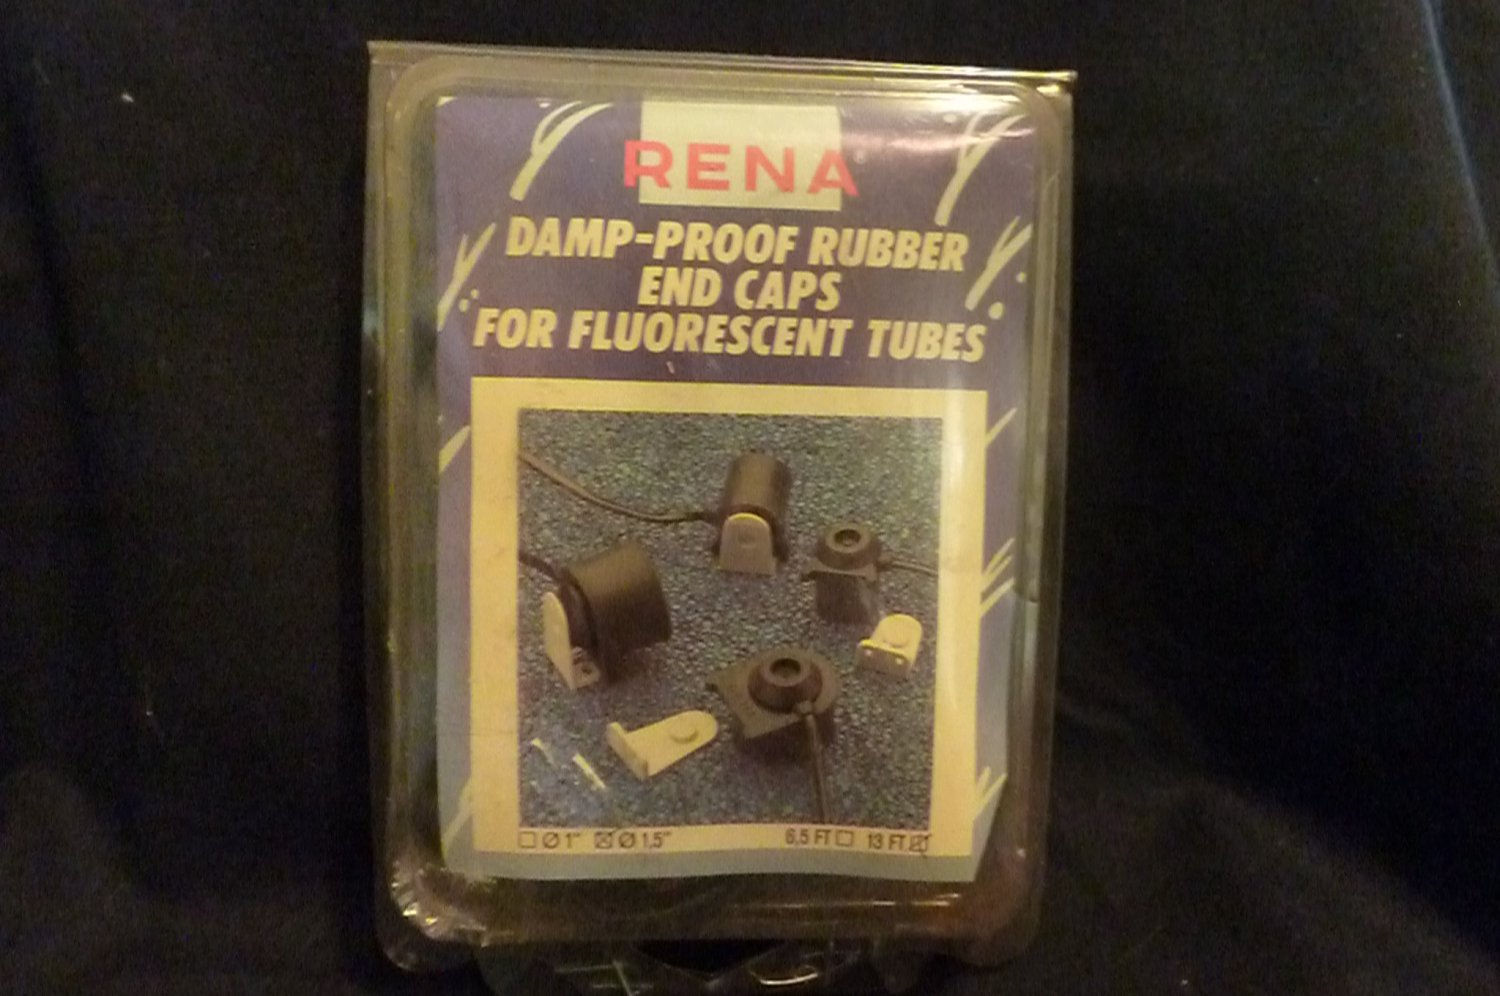 Rena Damp-Proof Rubber End Caps for Fluorescent Bulbs